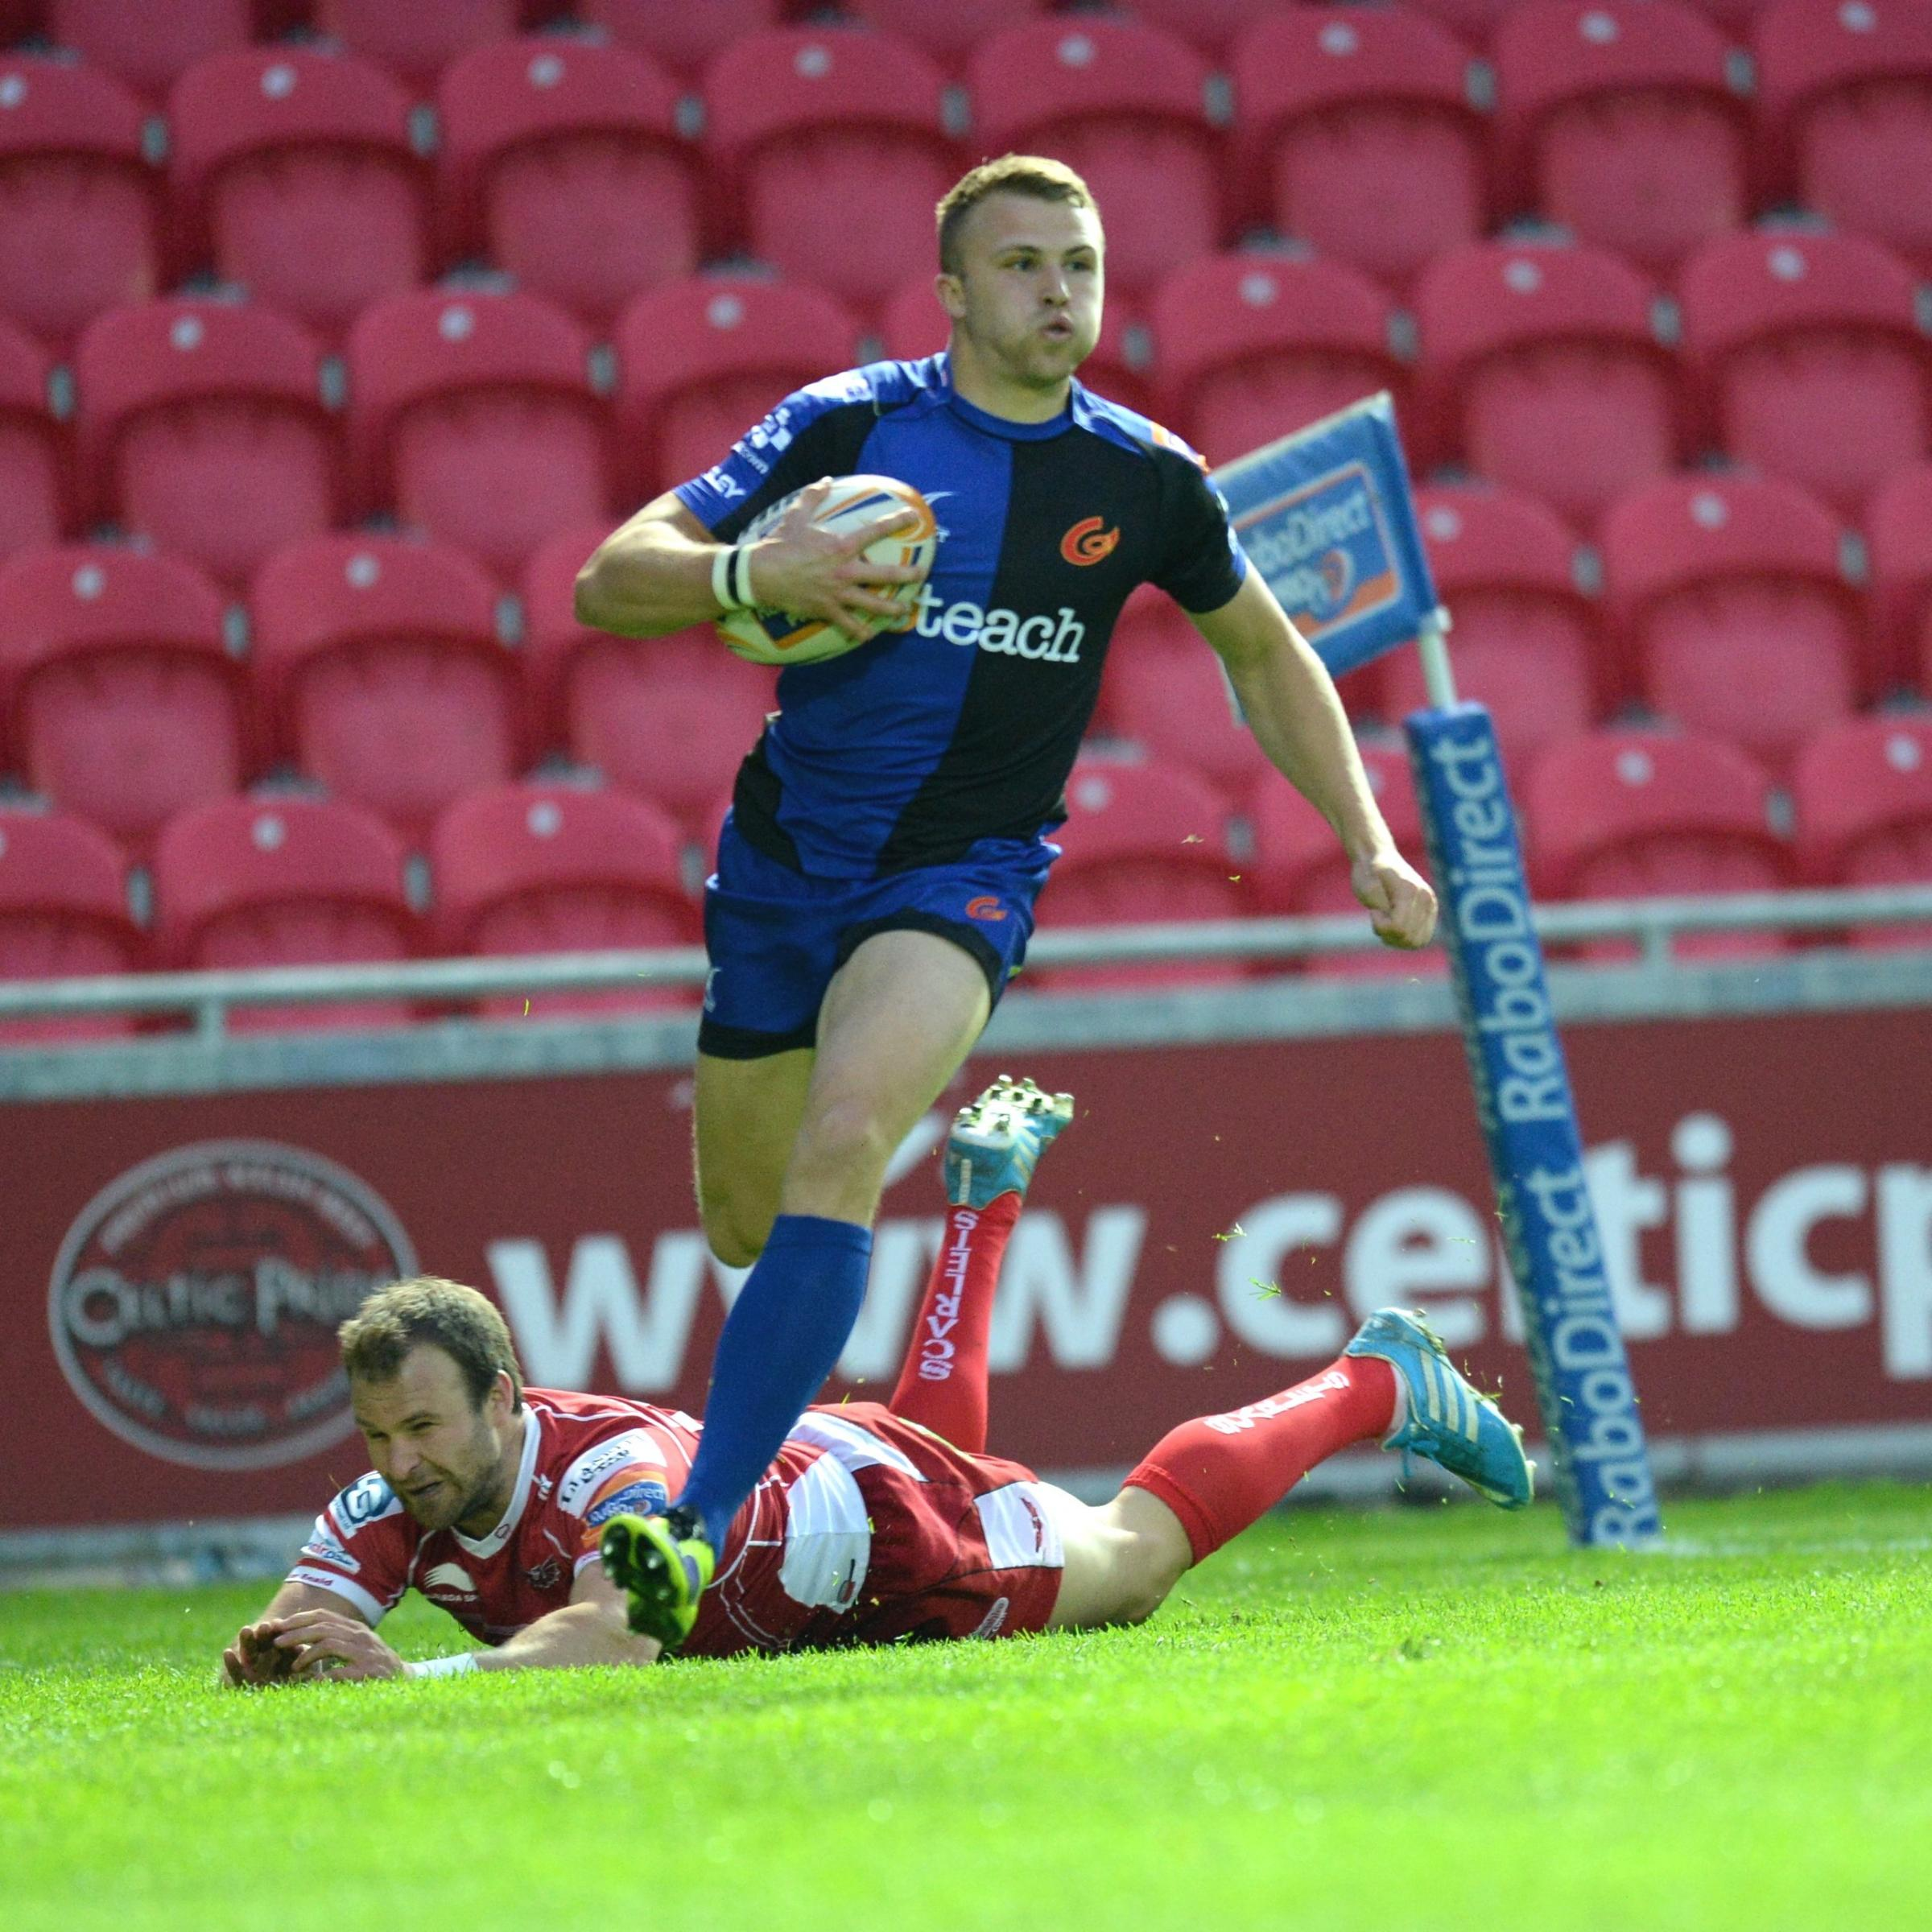 Scarlets v Dragons. Tom Prydie gets his second try of the game. (5904131)